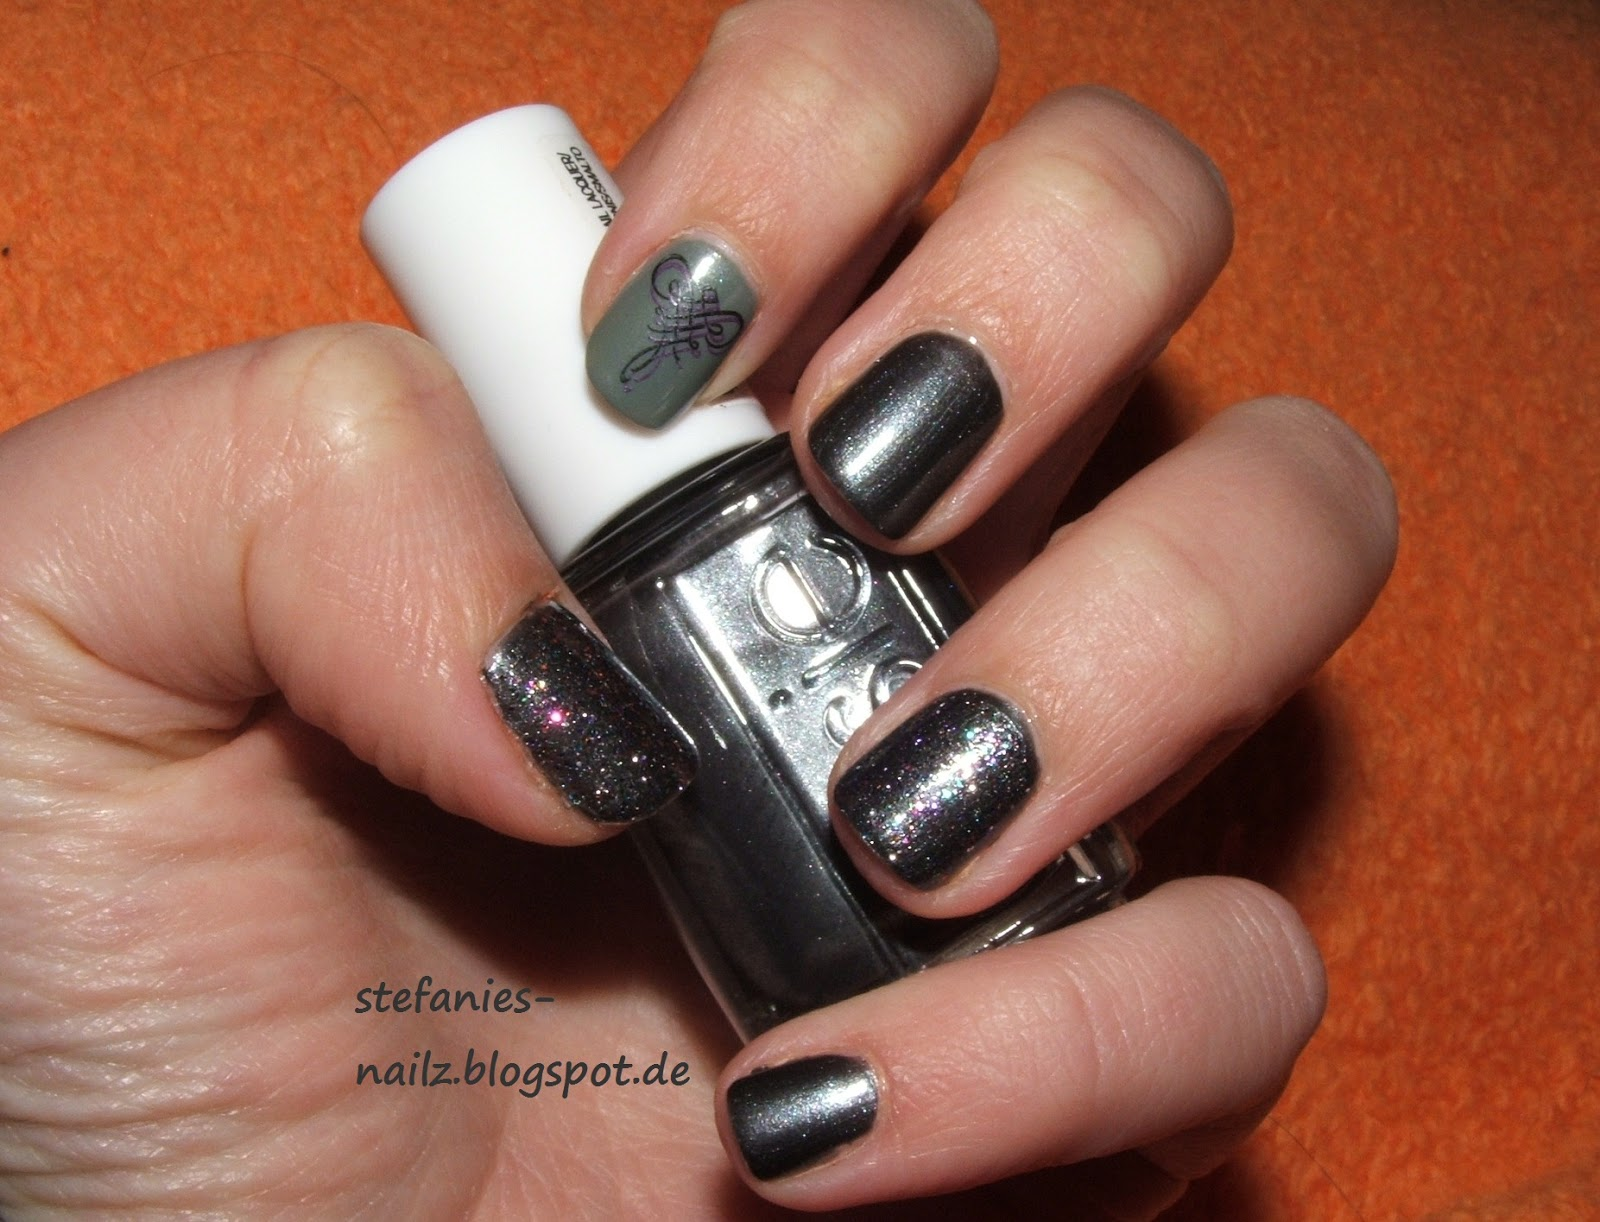 stefanie 39 s nailz graues nagellack design grey nail polish design. Black Bedroom Furniture Sets. Home Design Ideas